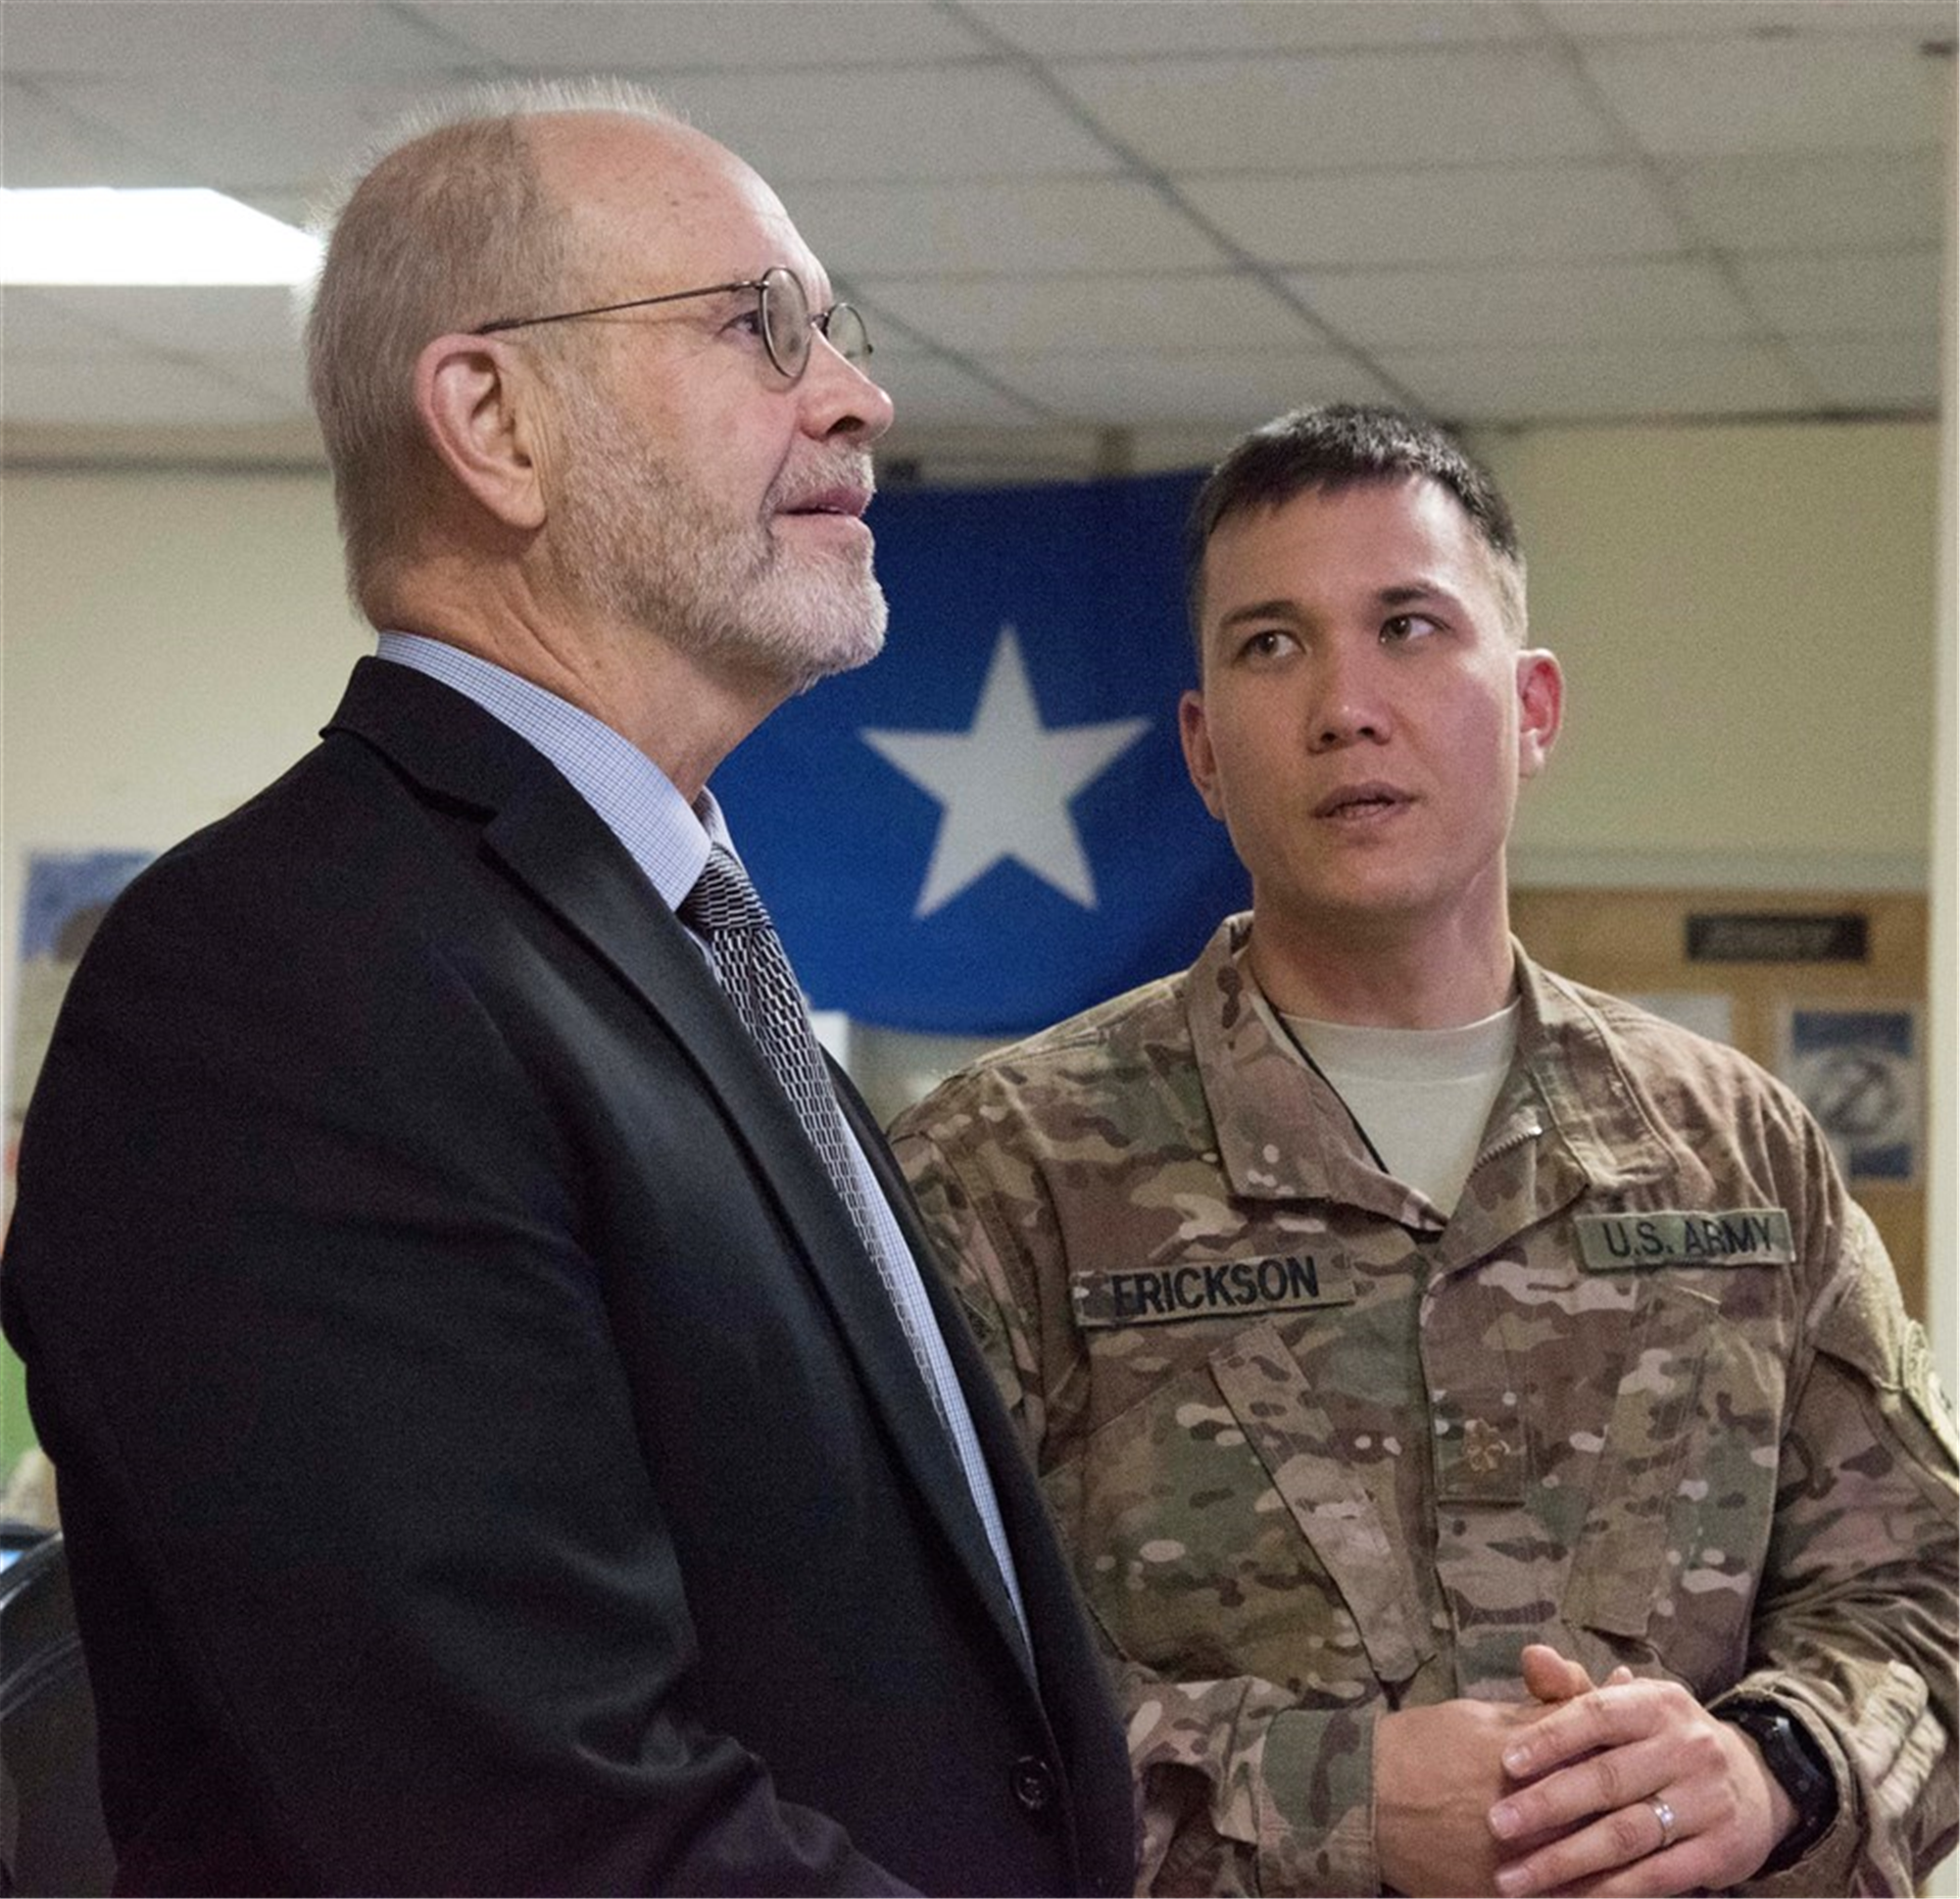 Retired Ambassador David Kaeuper, U.S. Chargé d'Affaires to Somalia hears an explanation from U.S. Army Maj. Kristopher Erickson, Somalia desk lead for the Fusion Action Cell hive at Camp Lemonnier, Djibouti, Oct. 15, 2015. The FAC personnel are separated into country desks composed of subject matter experts and foreign liaison officers who are responsible for streamlining the planning and coordination of projects in their respective countries. (U.S. Air Force photo by Staff Sgt. Victoria Sneed/Released)